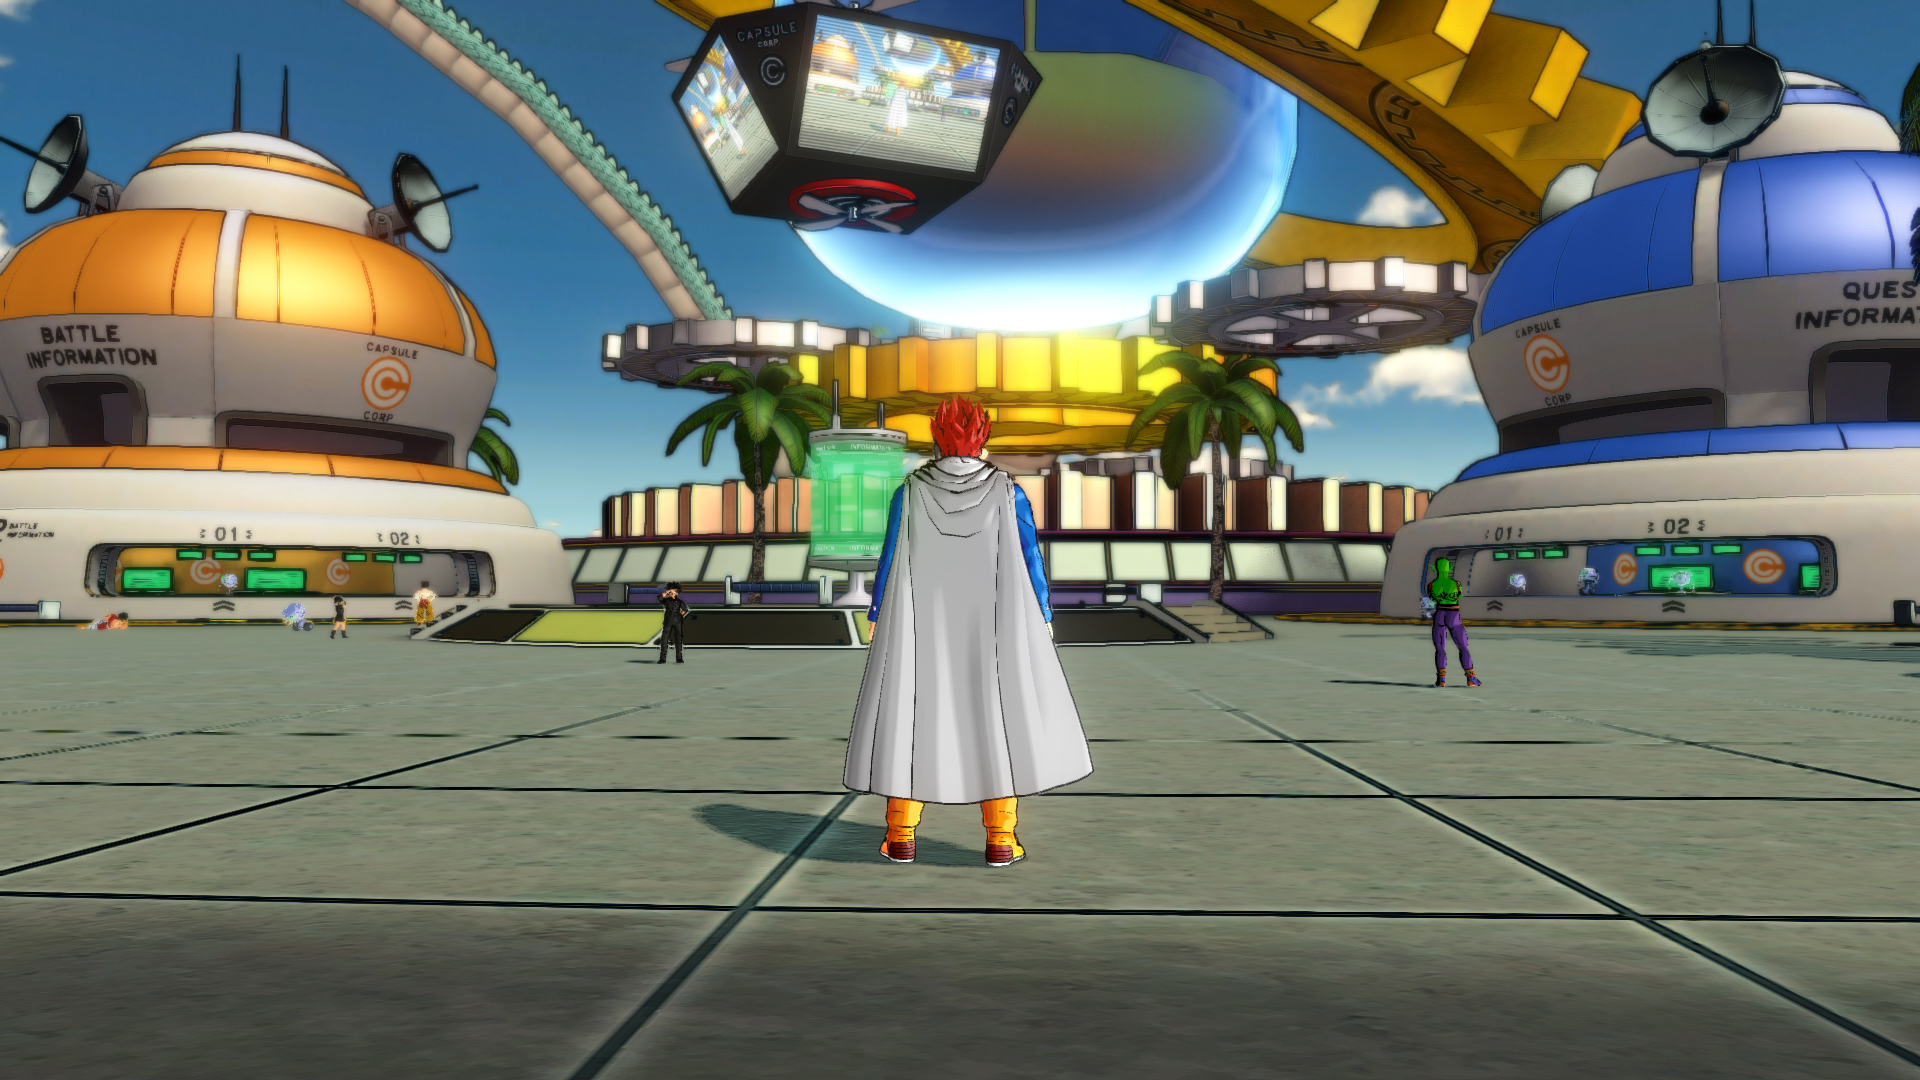 Dragon Ball Xenoverse Jan 2015 Screenshots 25